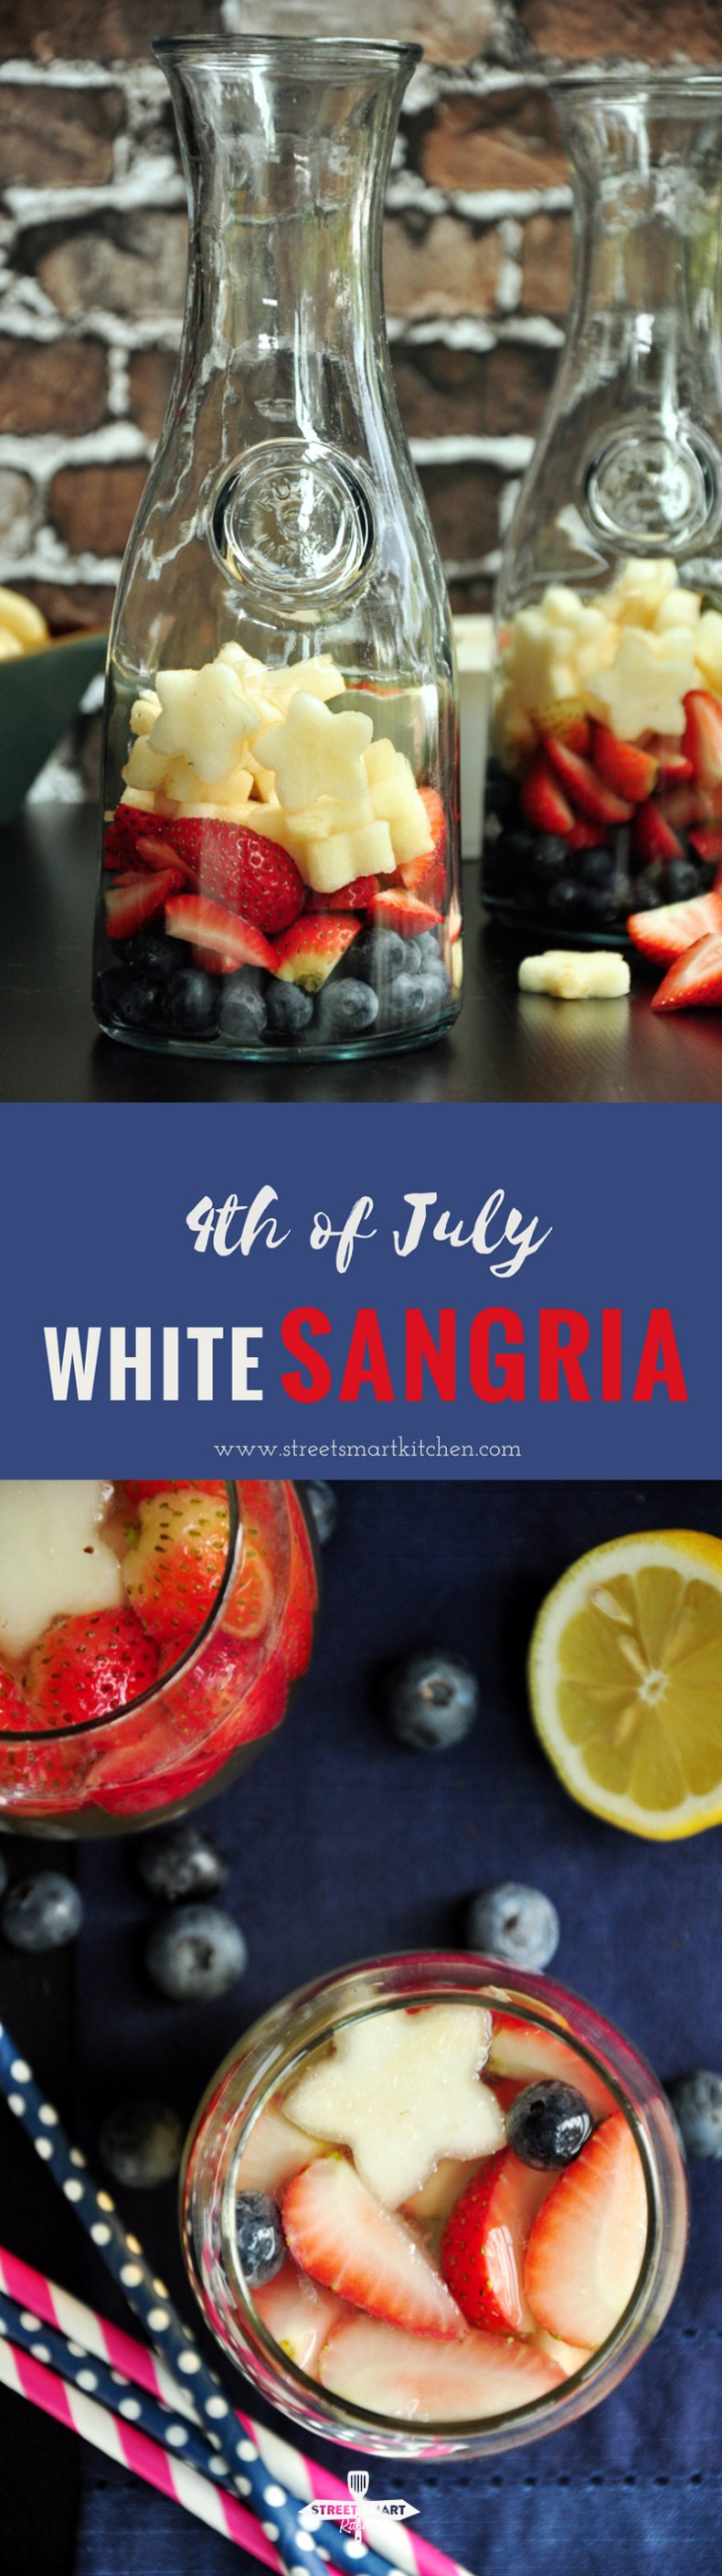 Strawberries, pears, and blueberries boasted by Moscato, tonic water, lemon juice and a gentle touch of gin makethe perfect white sangria for 4th of July!